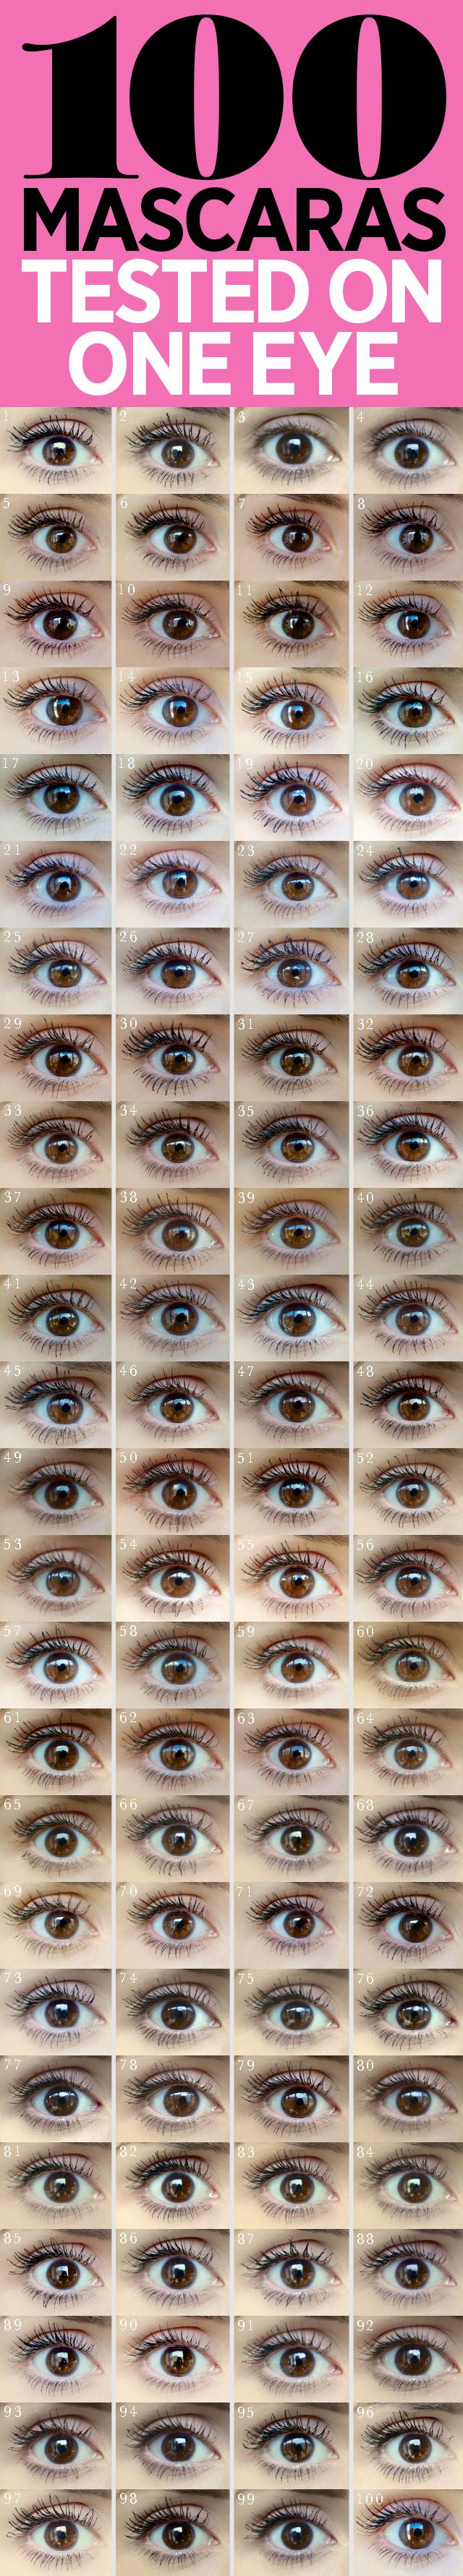 100 mascaras tested on ONE eye: picture reviews - This must have taken forever!! Crazy how they all have such different results.